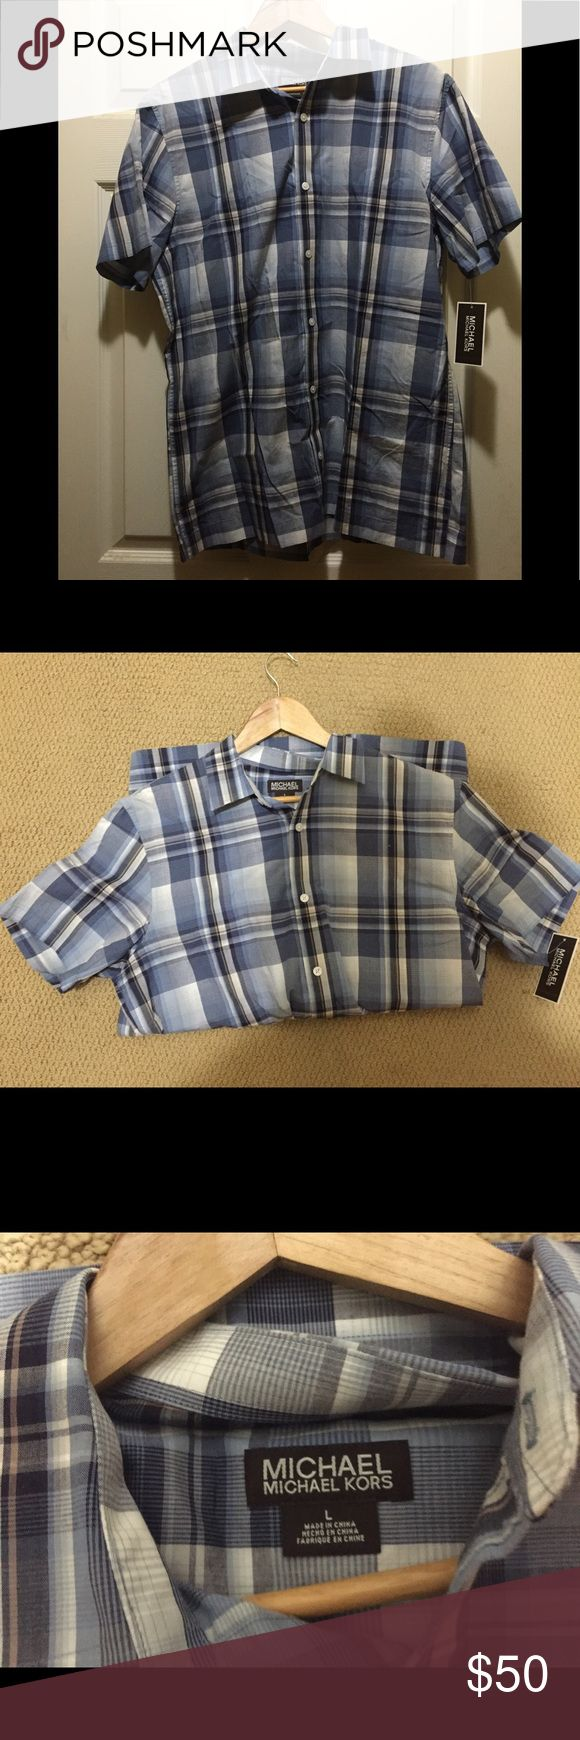 NWT MICHAEL KORS MEN'S SHIRT New with tags Michael Kors men's button up! Perfect condition and never worn. Michael Kors Shirts Casual Button Down Shirts